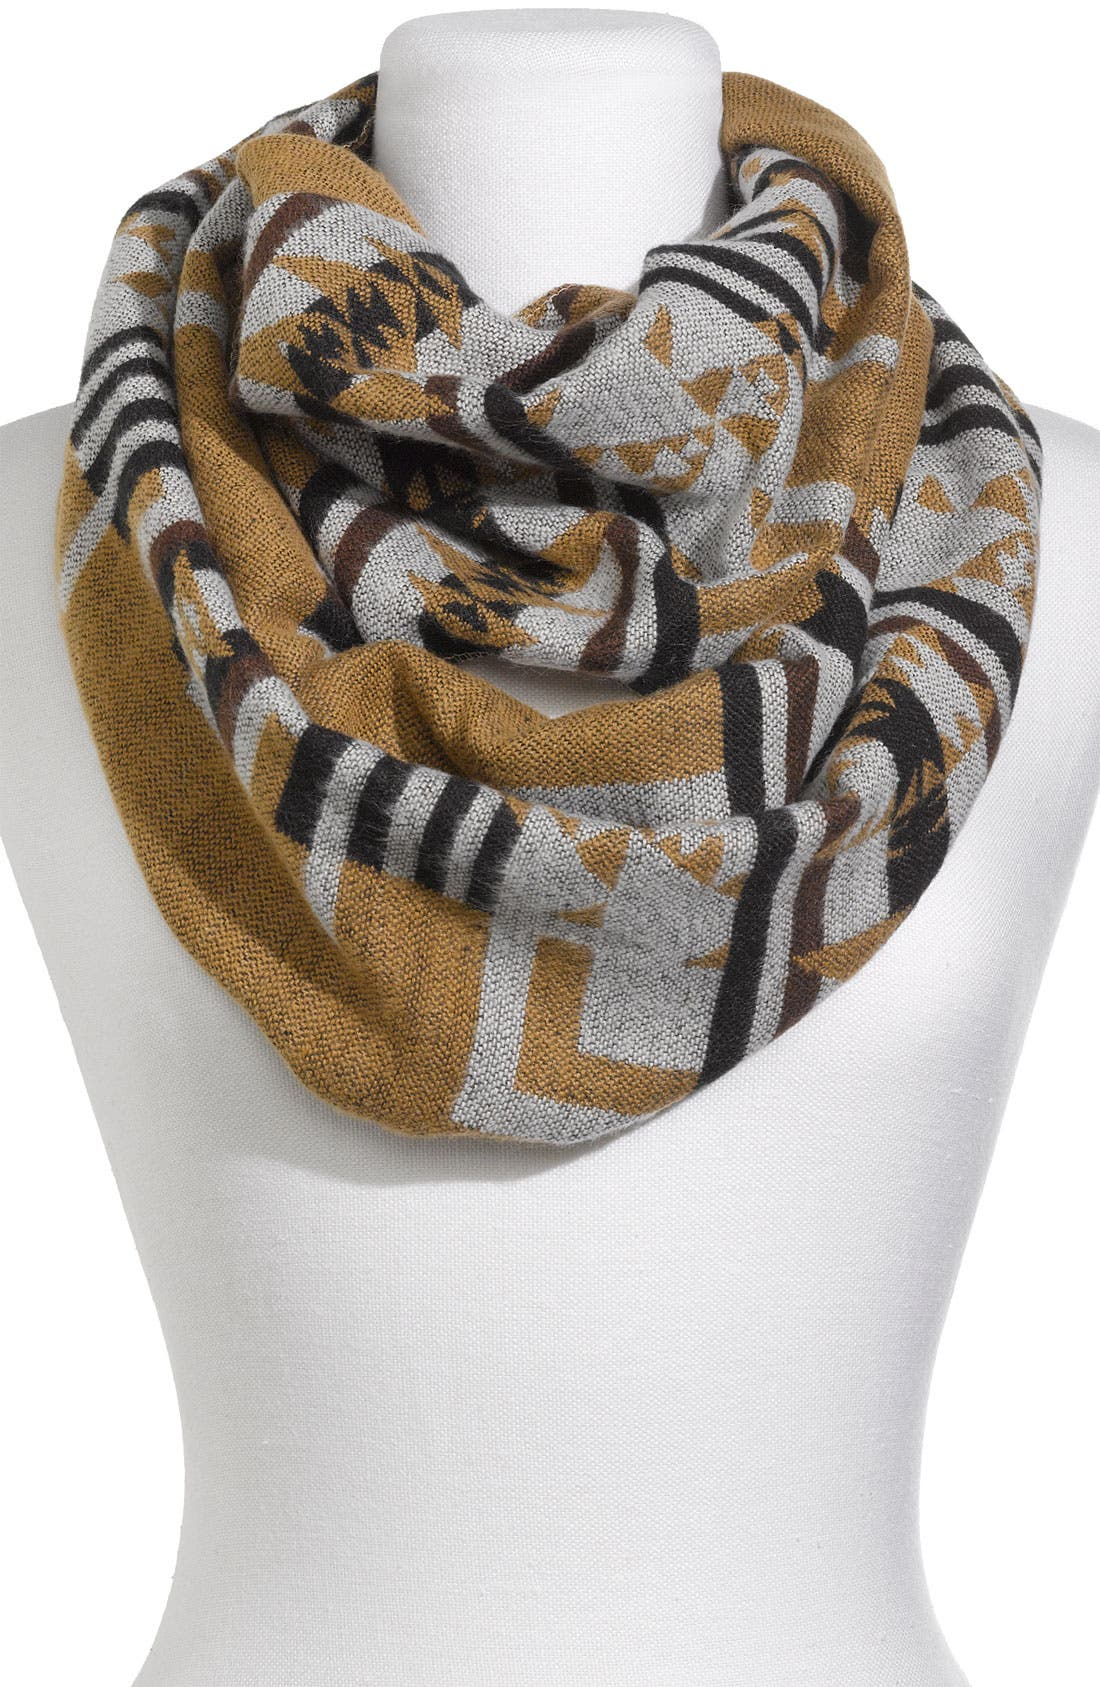 Main Image - The Accessory Collective 'Saddle Blanket' Infinity Scarf